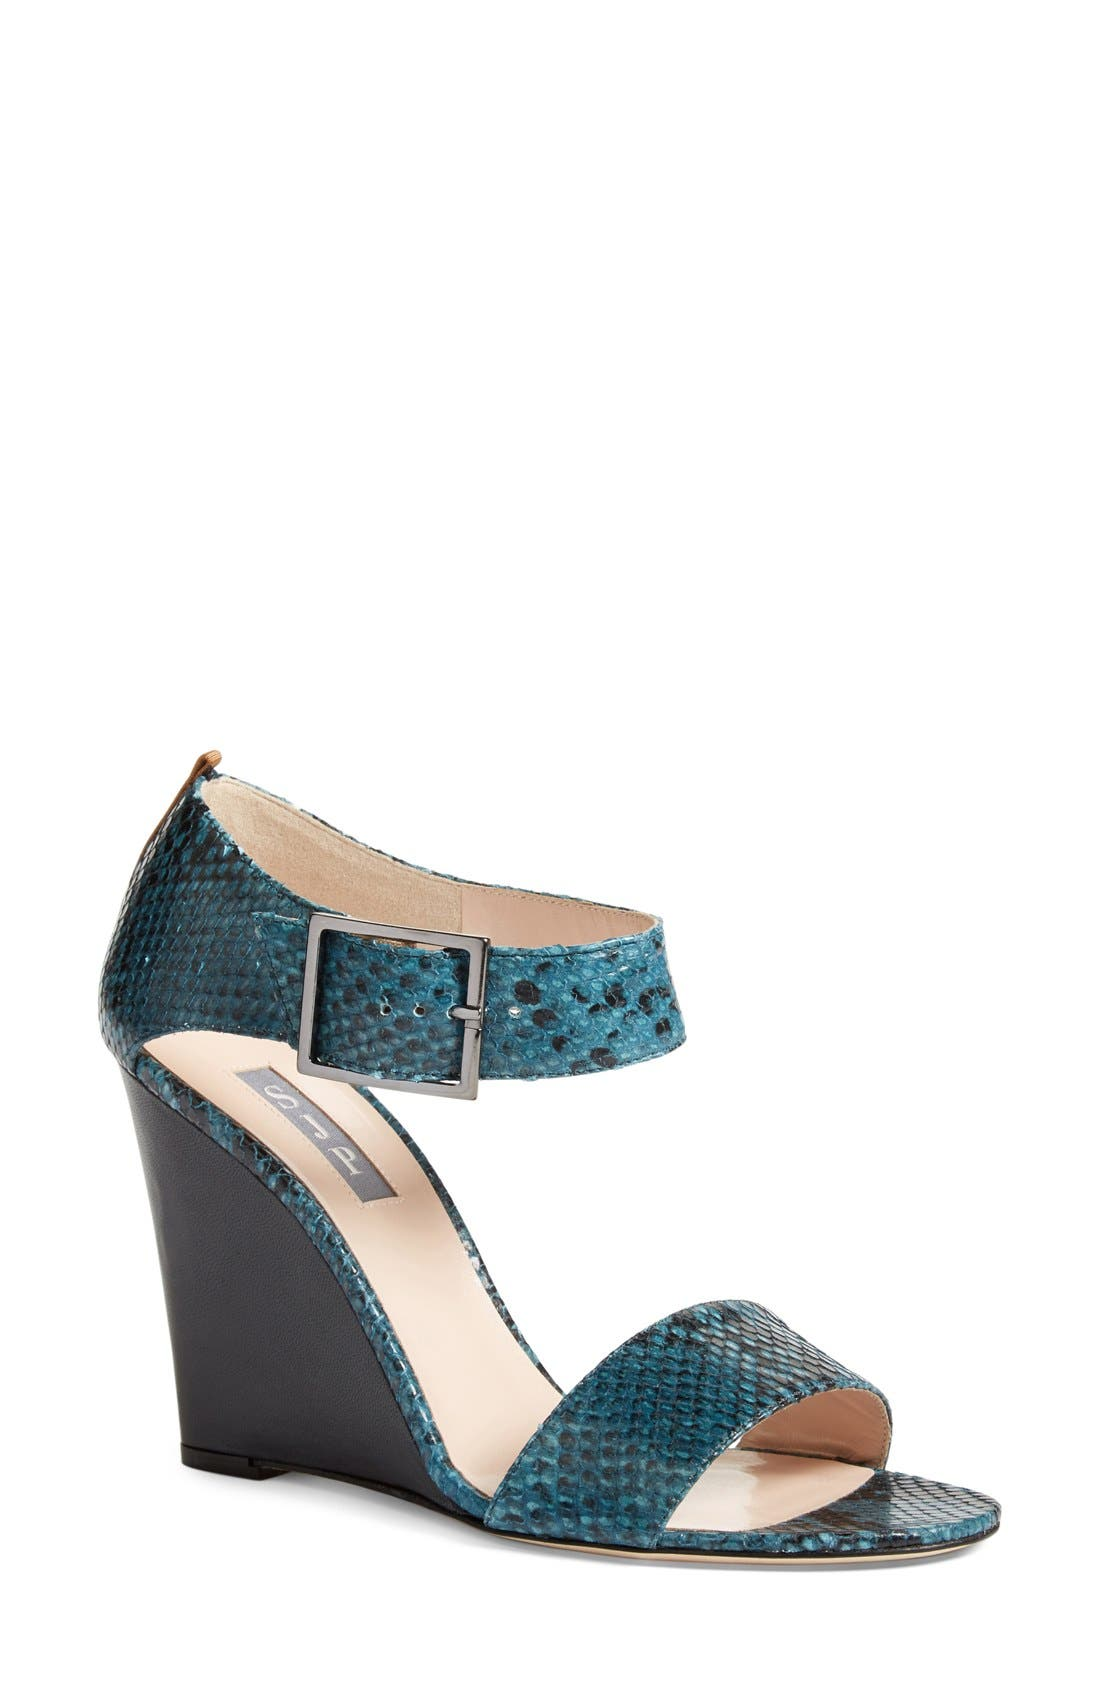 Alternate Image 1 Selected - SJP by Sarah Jessica Parker 'Tate' Wedge Sandal (Women)